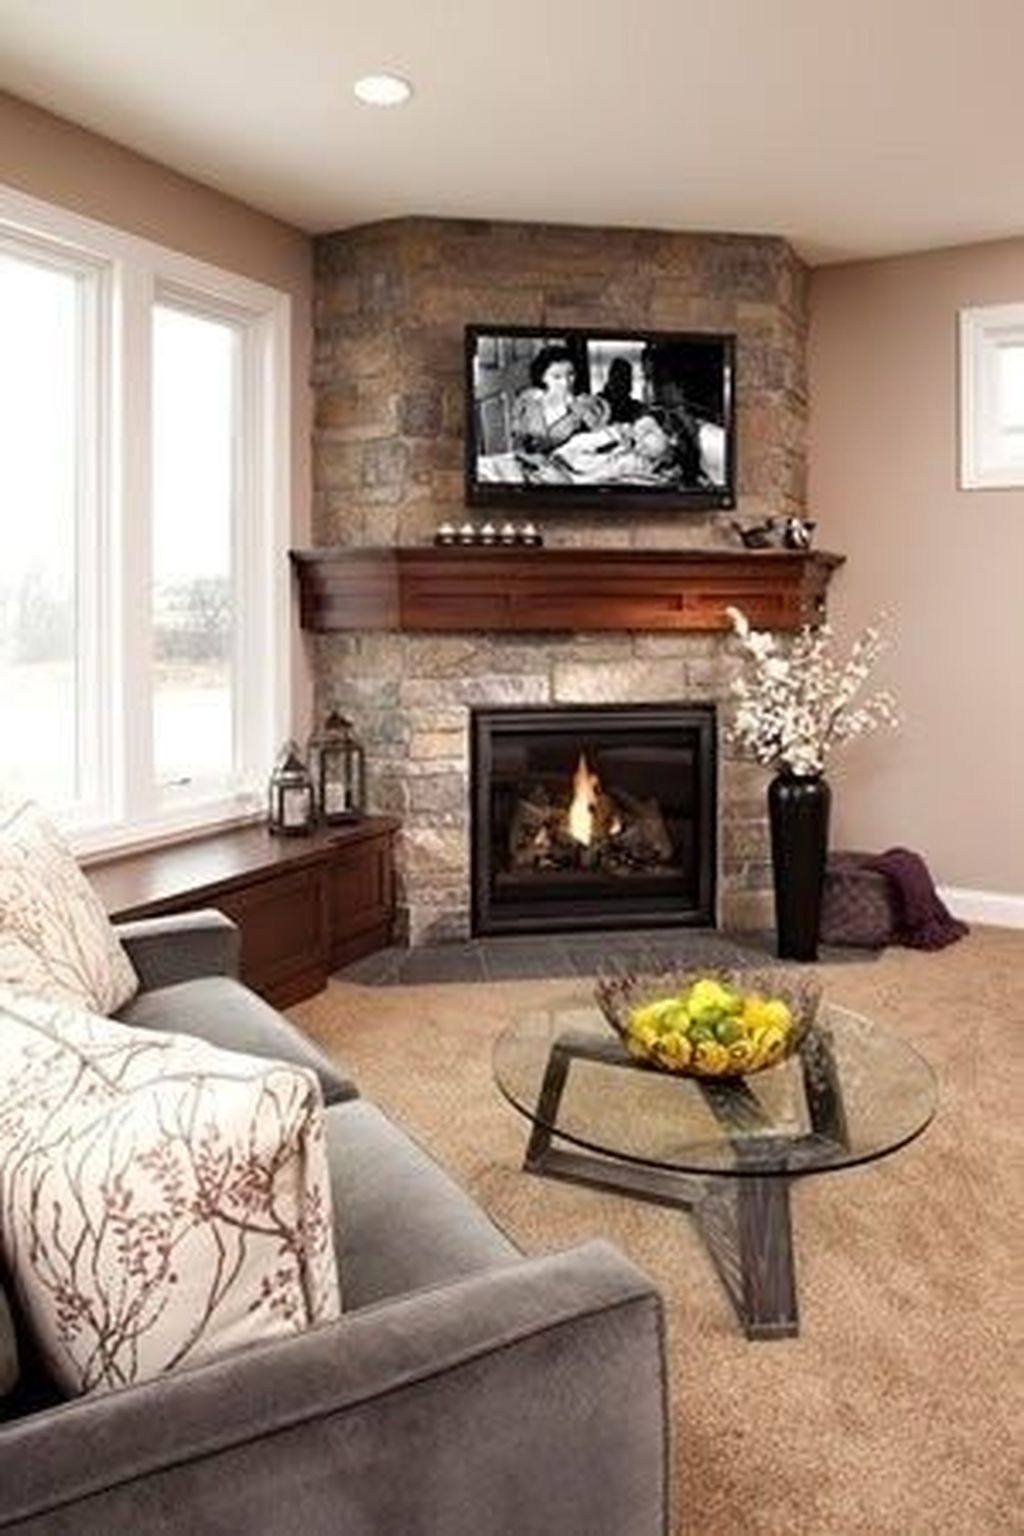 44 Stunning Corner Fireplace Ideas For Your Living Room Design In 2021 Corner Fireplace Living Room Living Room With Fireplace Fireplace Furniture